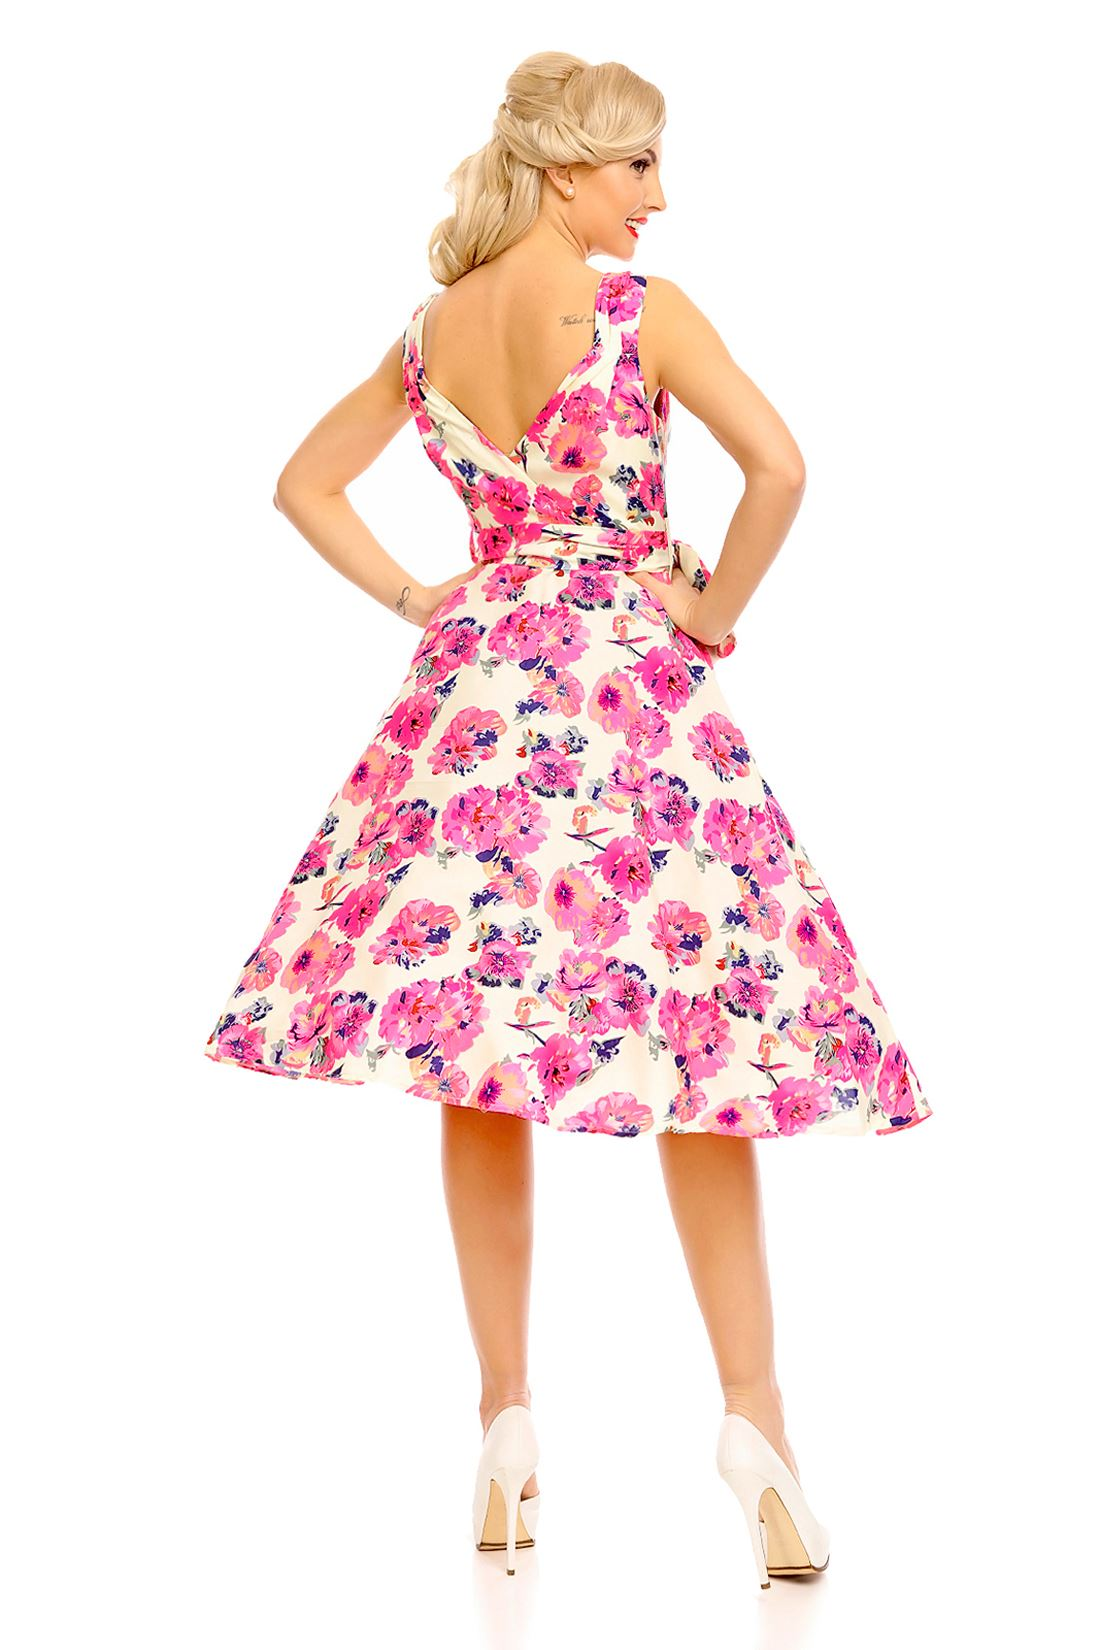 Details about Looking Glam 1950s Retro Vintage Pin Up Swing Floral Dress